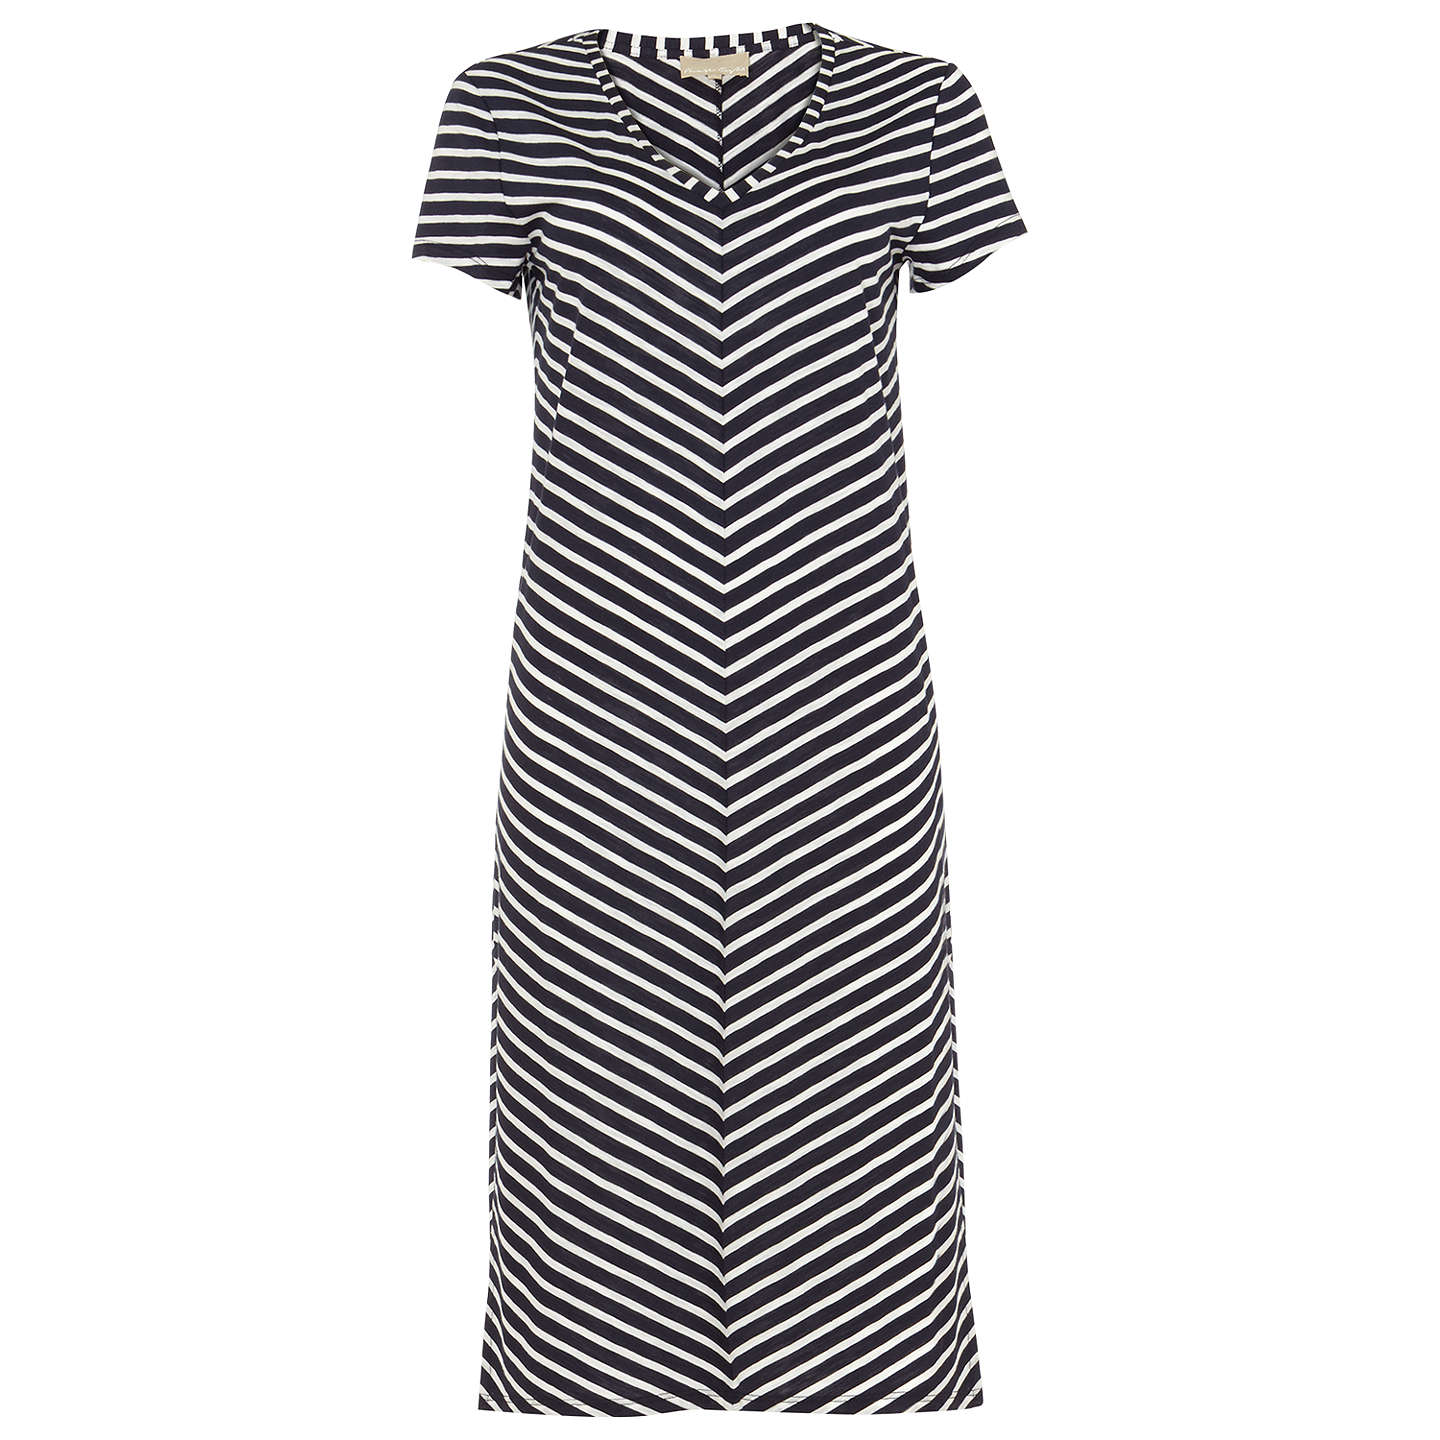 BuyPhase Eight Chantelle Chevron Beach Dress, Navy/Ivory, 8 Online at johnlewis.com